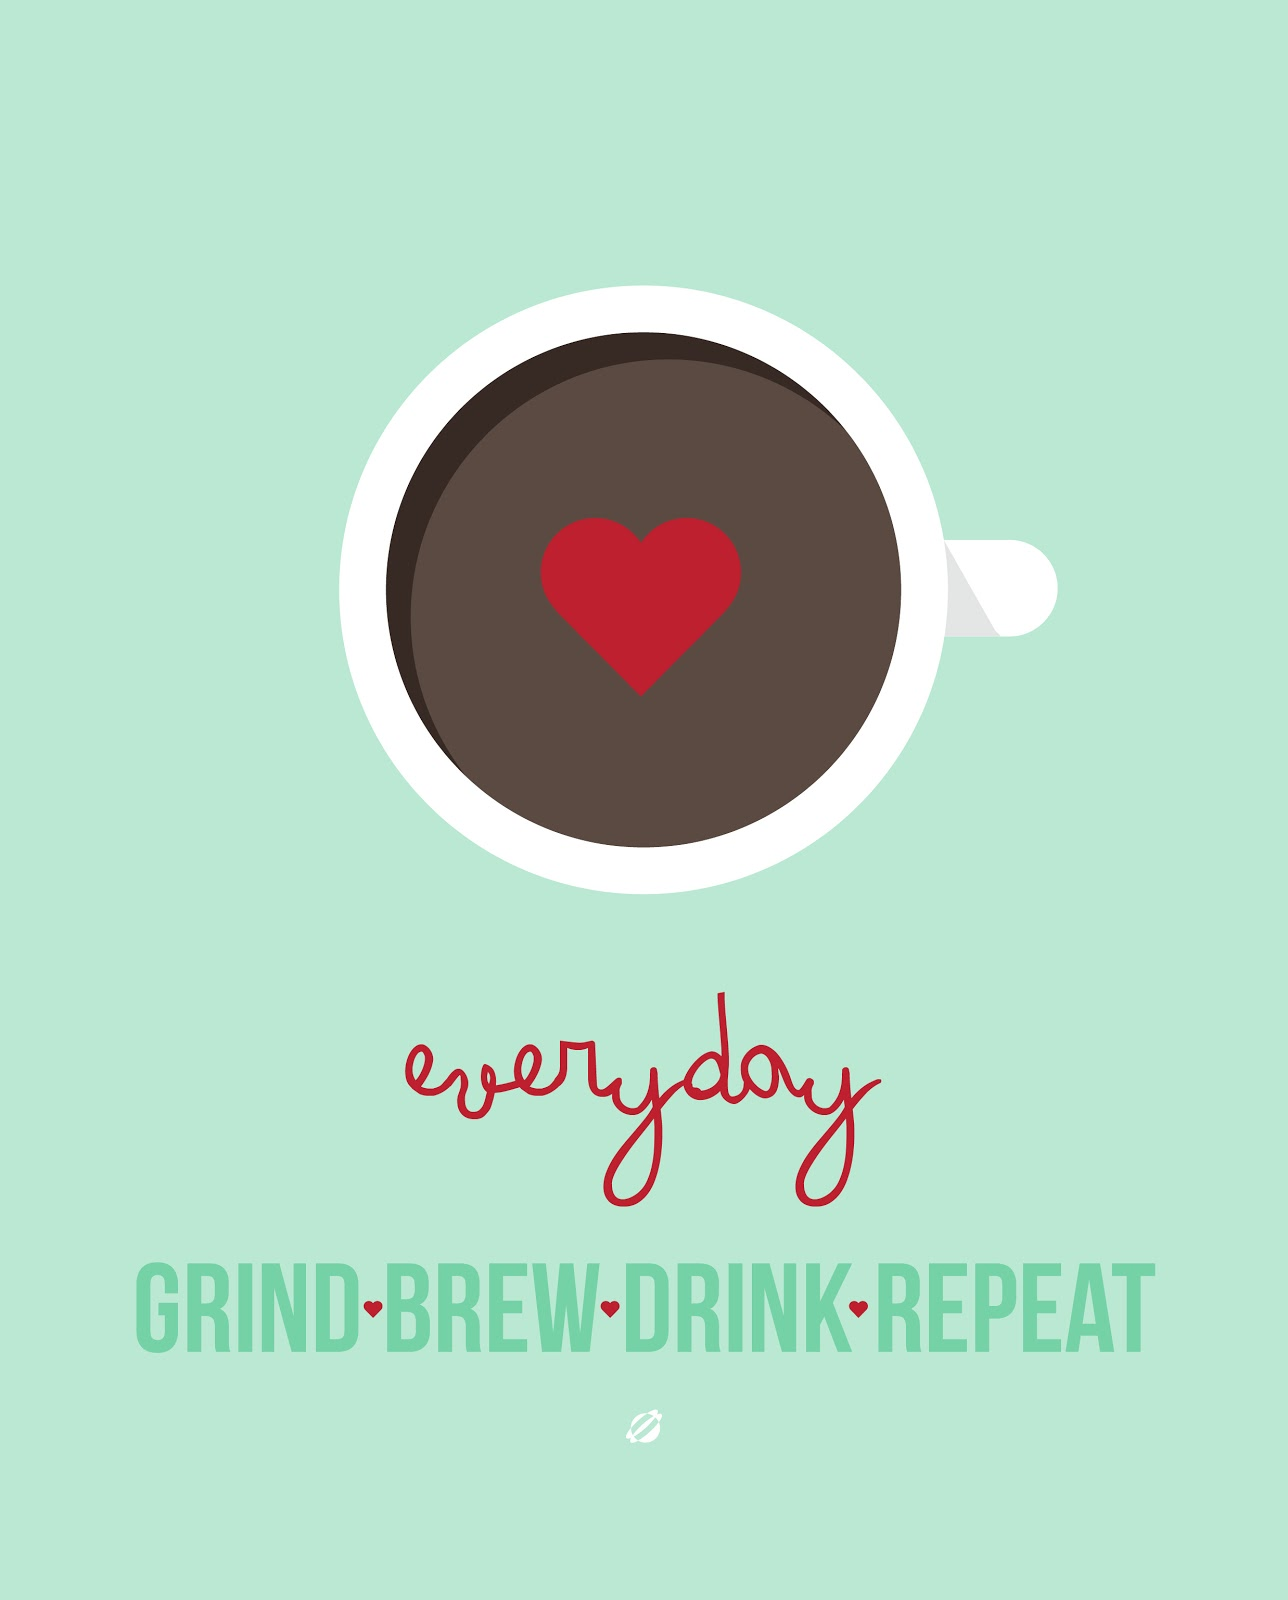 LostBumblebee ©2014 Grind Brew Drink Repeat #freeprintable -for personal use only